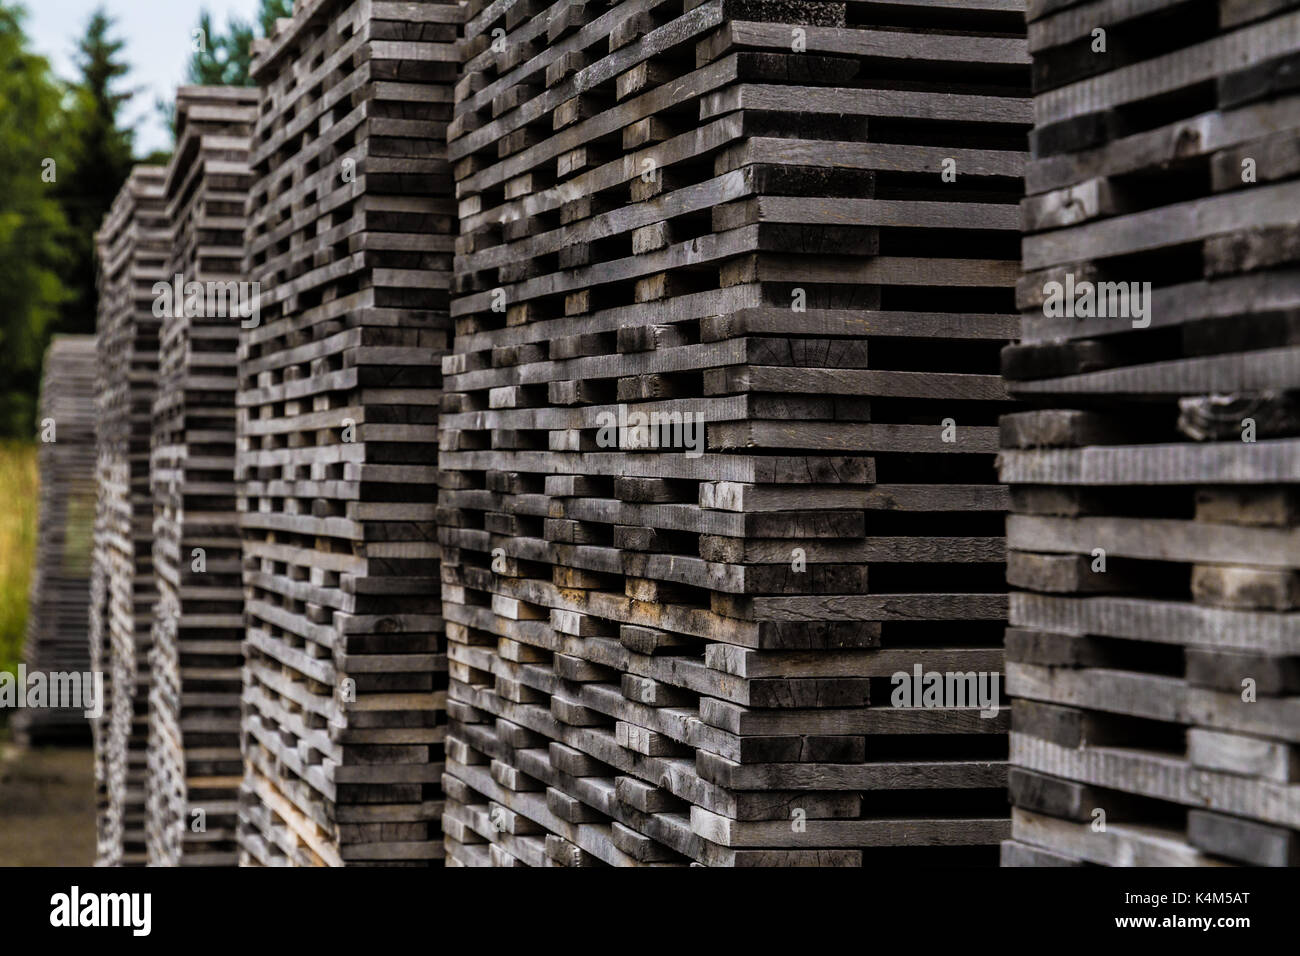 Pile of decayed lumber stacked on top each other - Stock Image